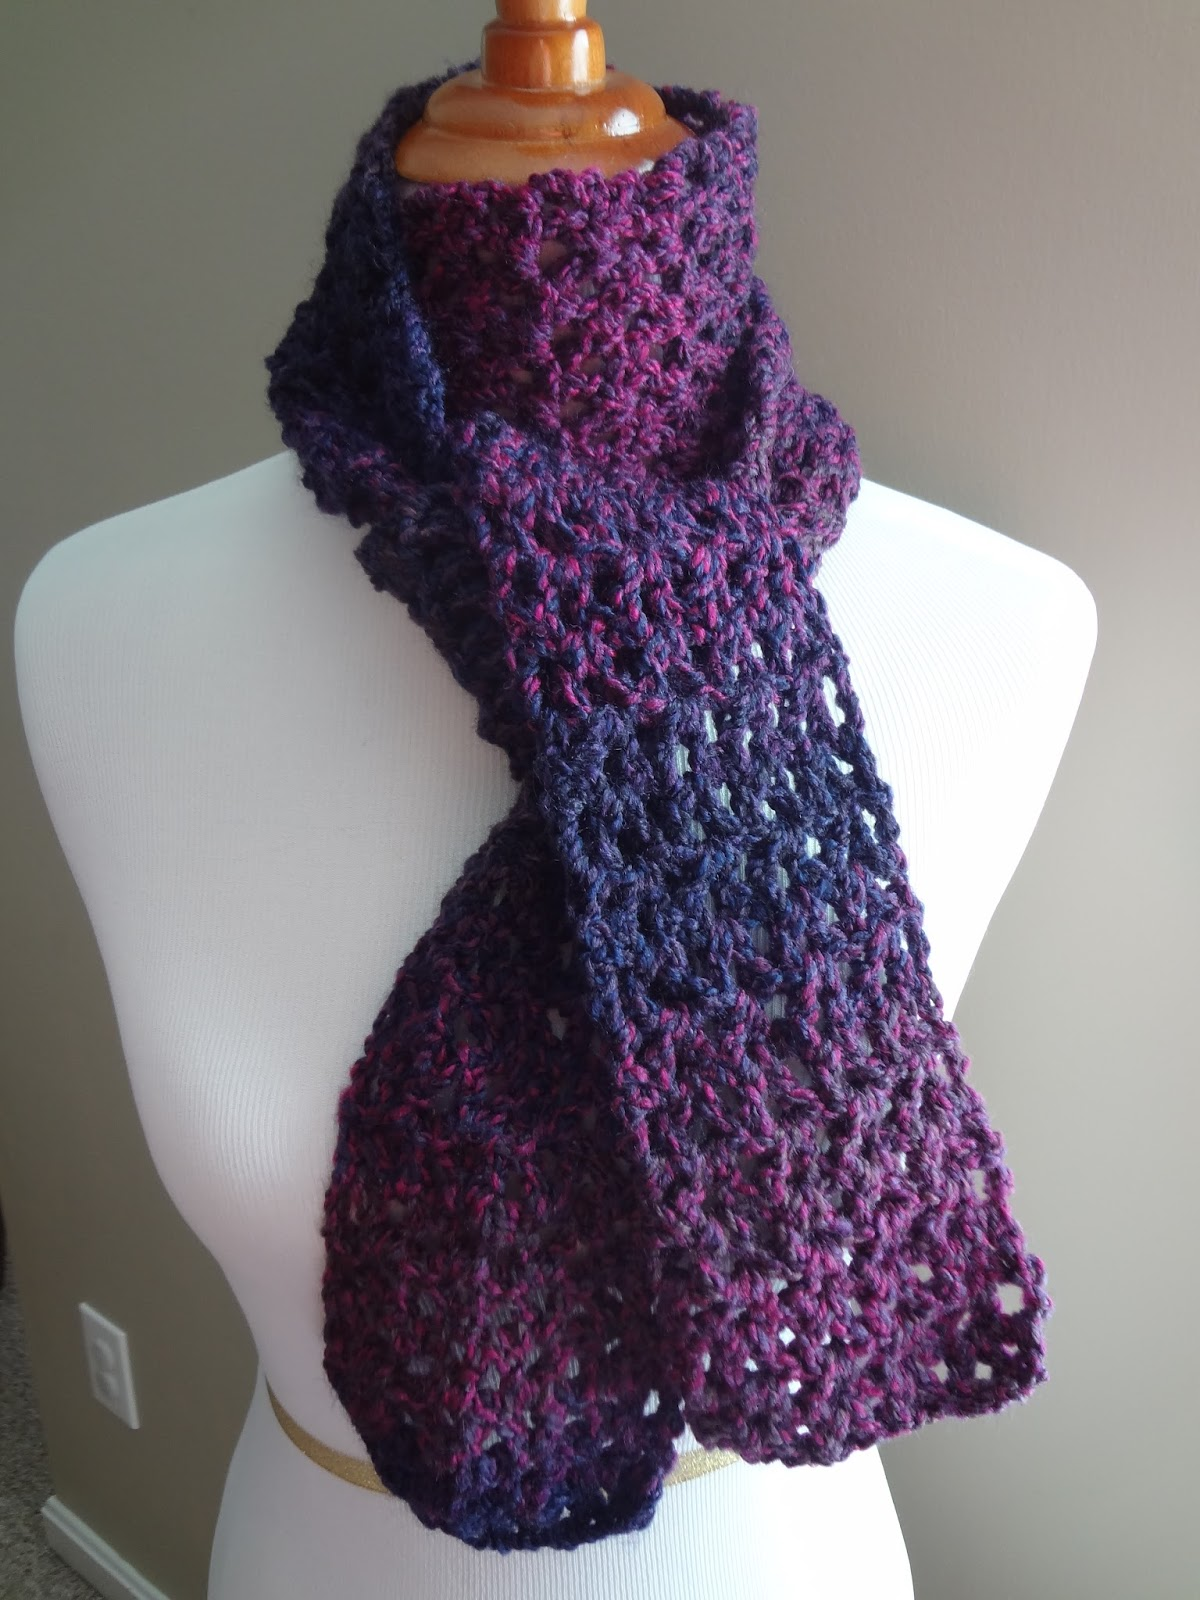 Crochet Beginner : free crochet patterns for beginners scarves free crochet patterns for ...